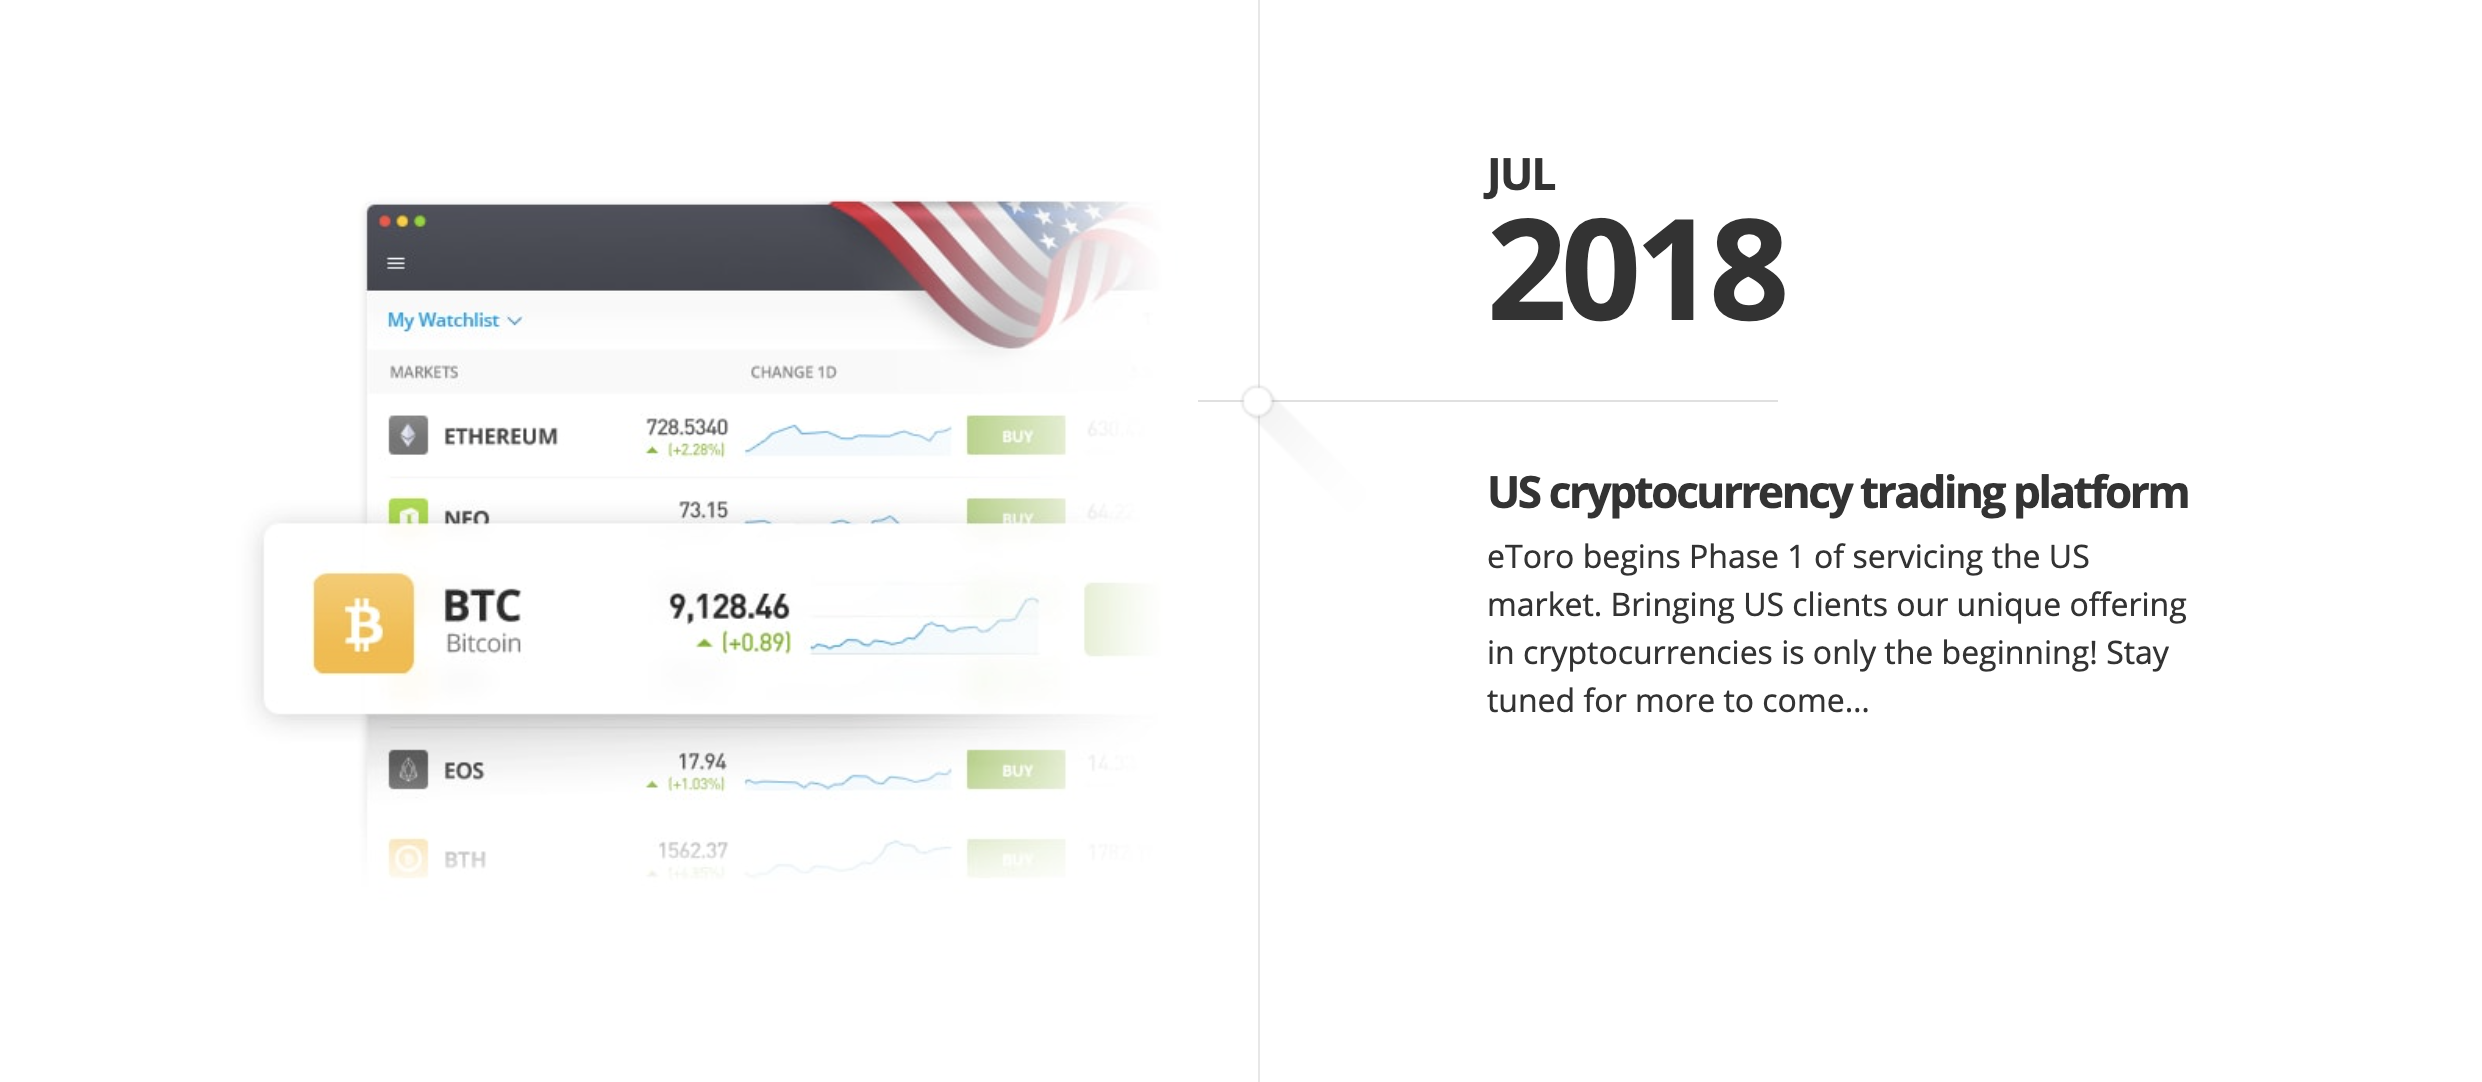 eToro started serving the U.S. market with cryptocurrency trading in 2017. Image from etoro.com